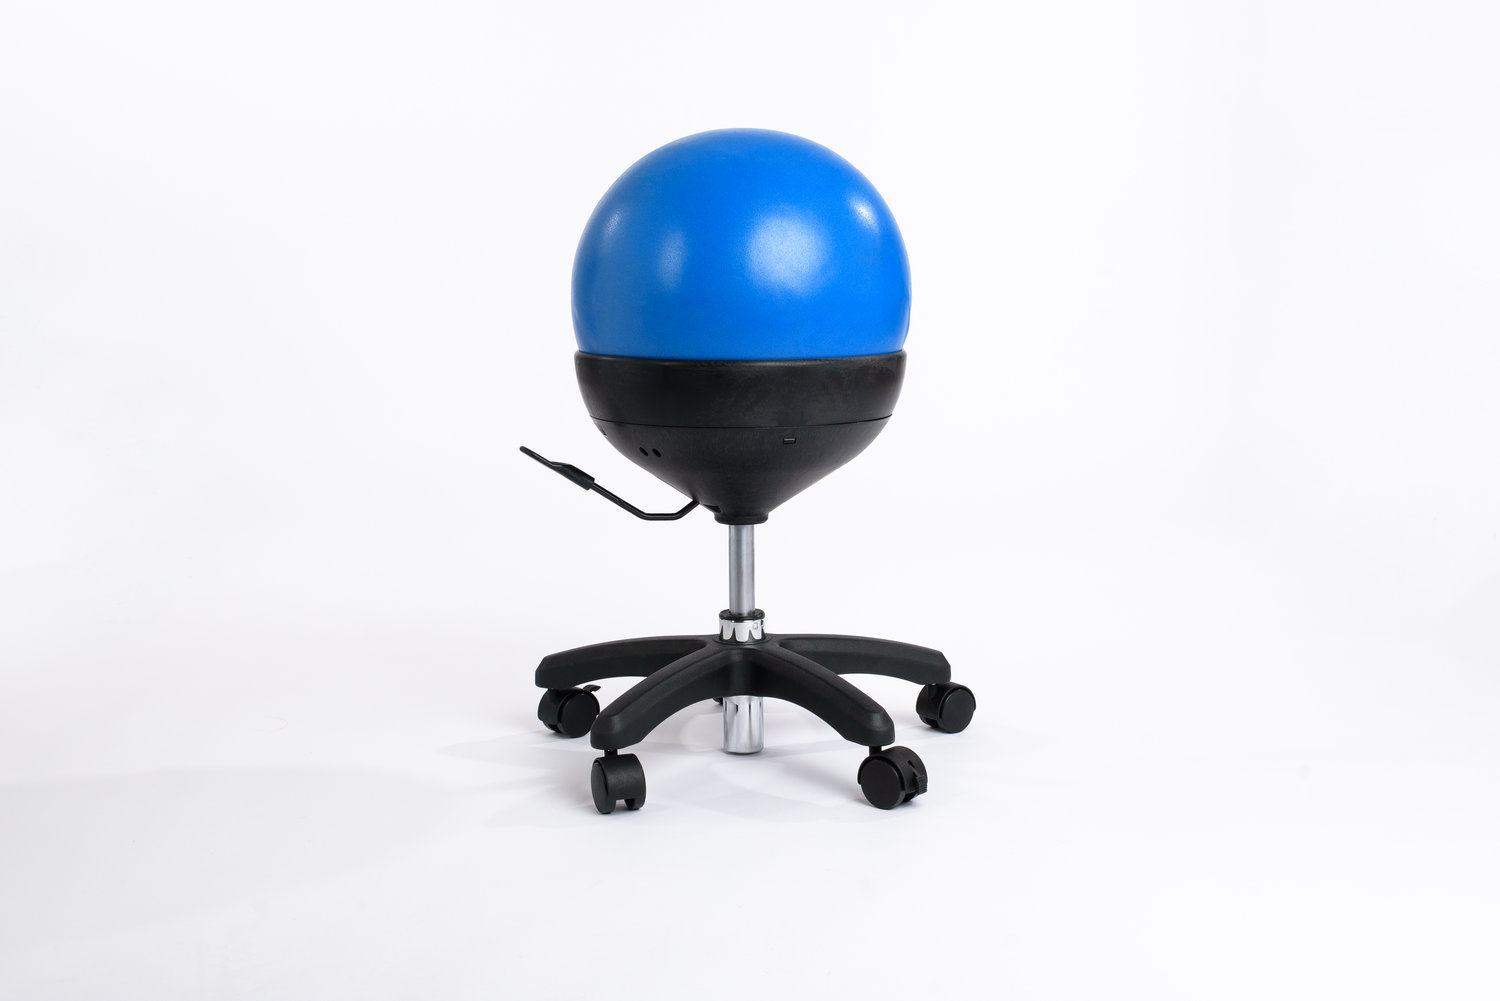 Pleasing Aeromat Adjustable Ball Stool Aeromat Quality Fitness Products And Accessories Onthecornerstone Fun Painted Chair Ideas Images Onthecornerstoneorg